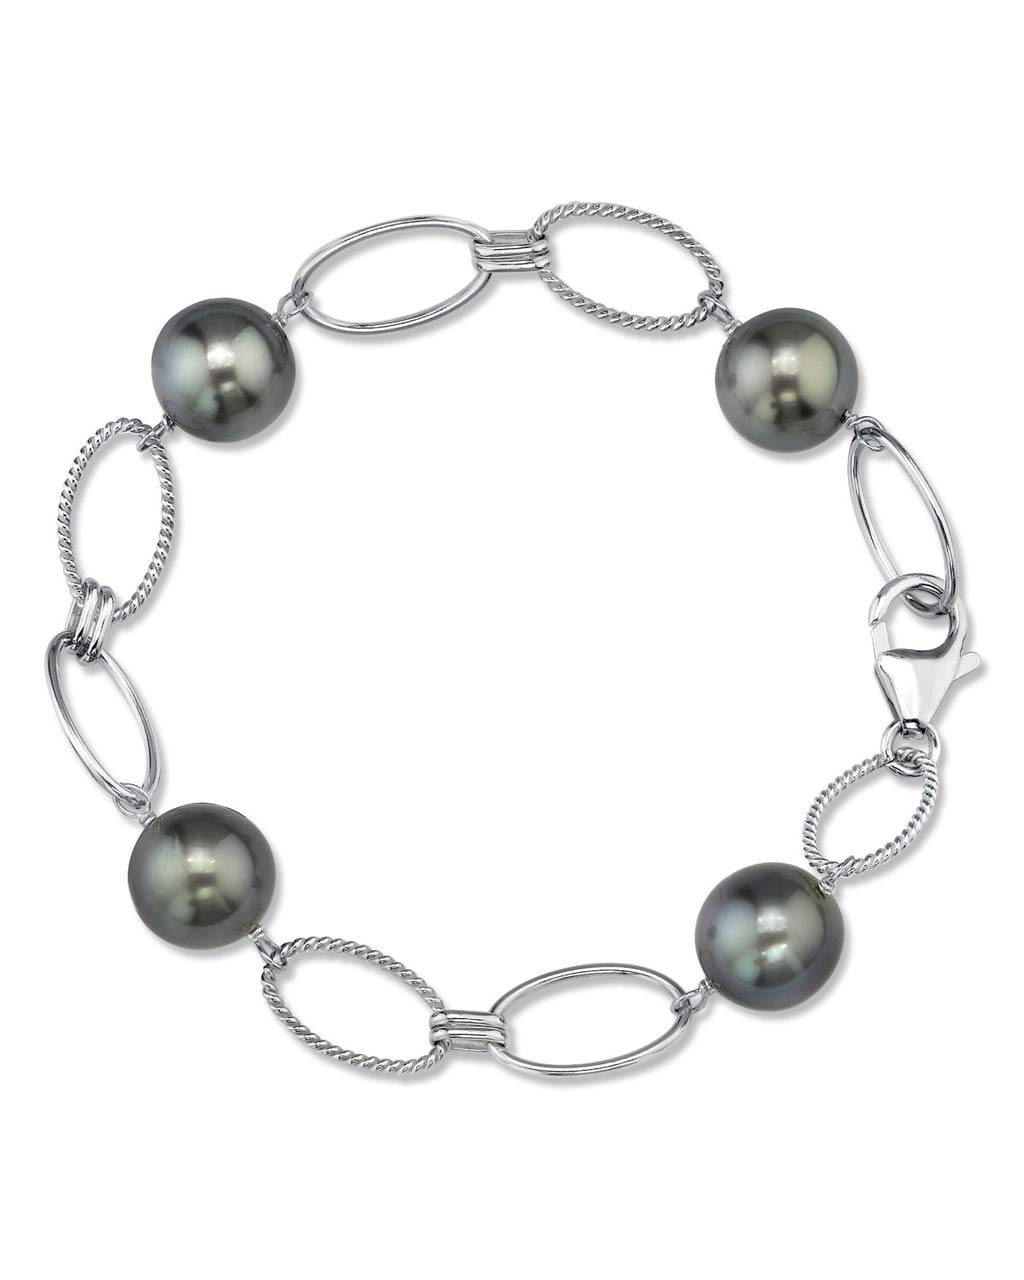 THE PEARL SOURCE Sterling Silver 10-11mm Round Genuine Black Tahitian South Sea Cultured Pearl Bracelet for Women